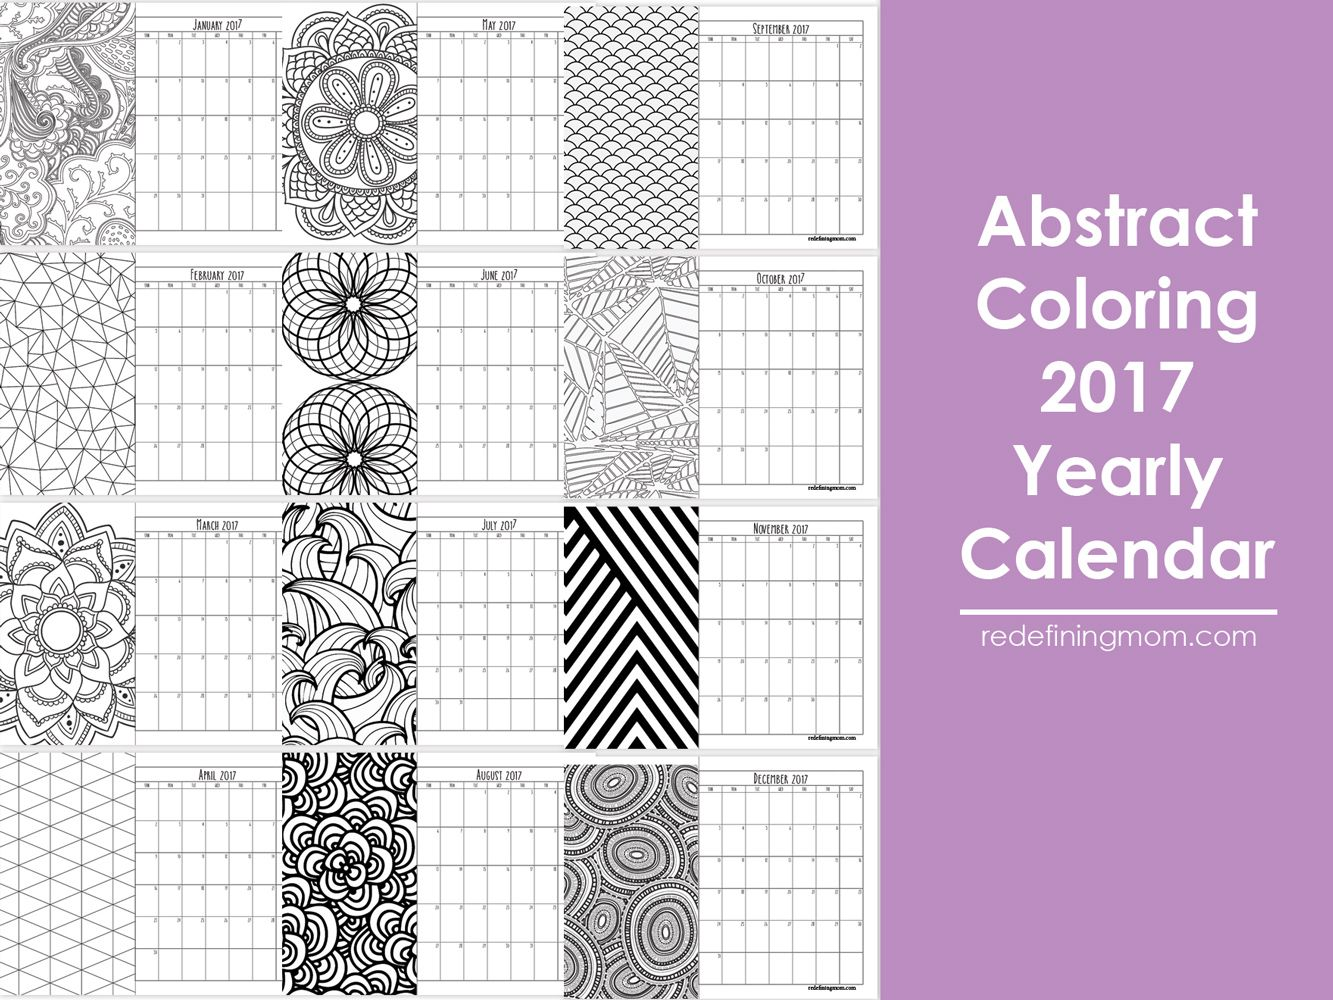 2019 Calendar Coloring Pages With Abstract Adult 2017 Free Printable Redefining Mom